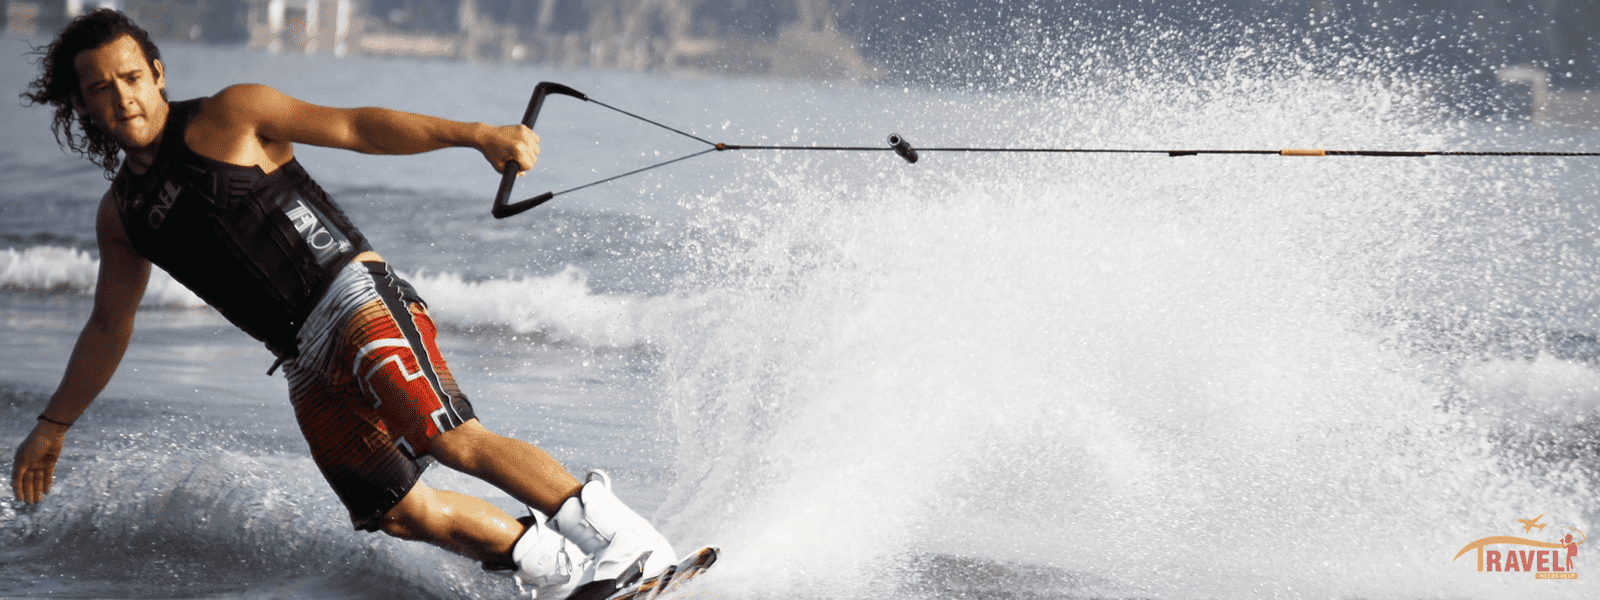 Water Ski (By Beluga Extreme) - Tour